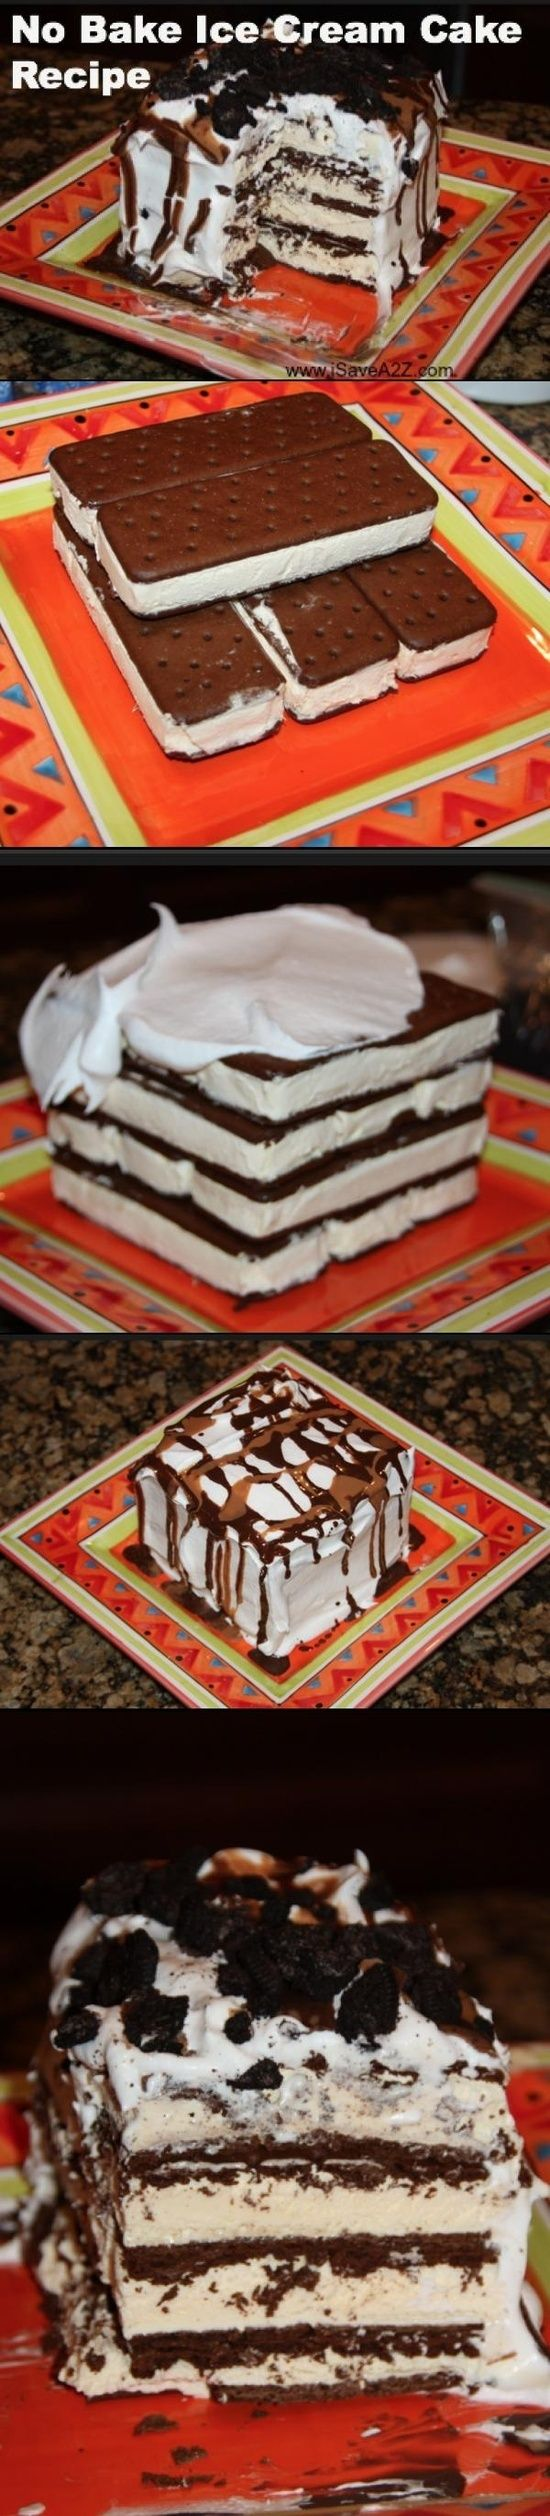 EZ Ice Cream cake! My Mom has made this easy dessert for company before and it was a big hit! You could always add a layer of peanut butter, caramel, chocolate fudge or Nutella between the sandwiches for variations.